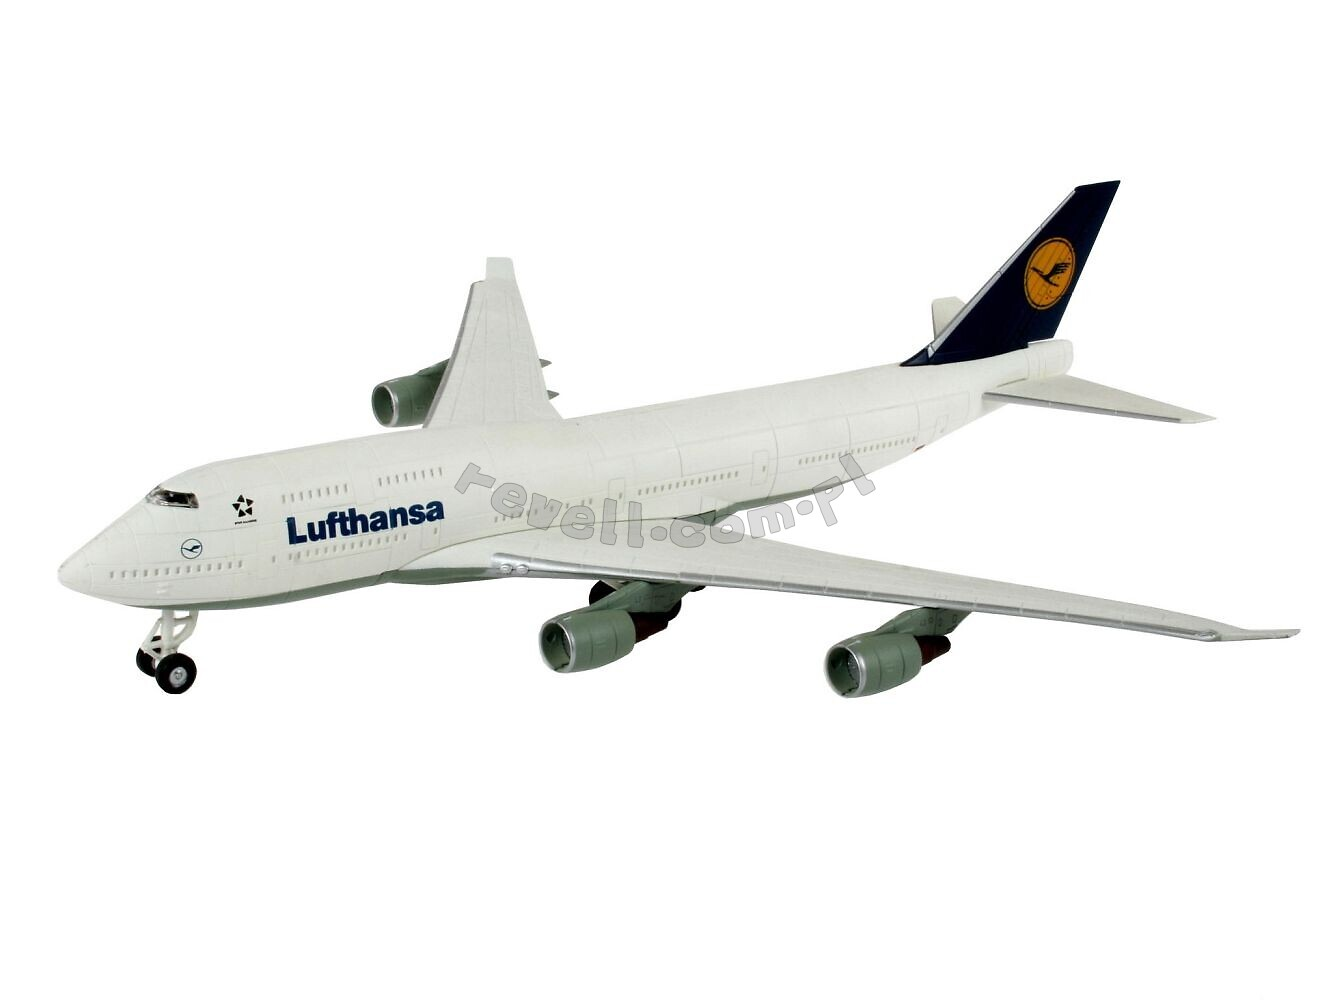 boeing 747 400 model with Boeing 747 400 Lufthansa Art 6344 on Air France 747 400 in addition Westjet B737 700 W Reg C Gwso Gjwja1299 1 400 likewise Model Id 1319 Airbus A380 841 Gulf Air 2003 furthermore 48855 Boeing 747 8 Cargo British Airways World Cargo in addition Cal China Airlines.